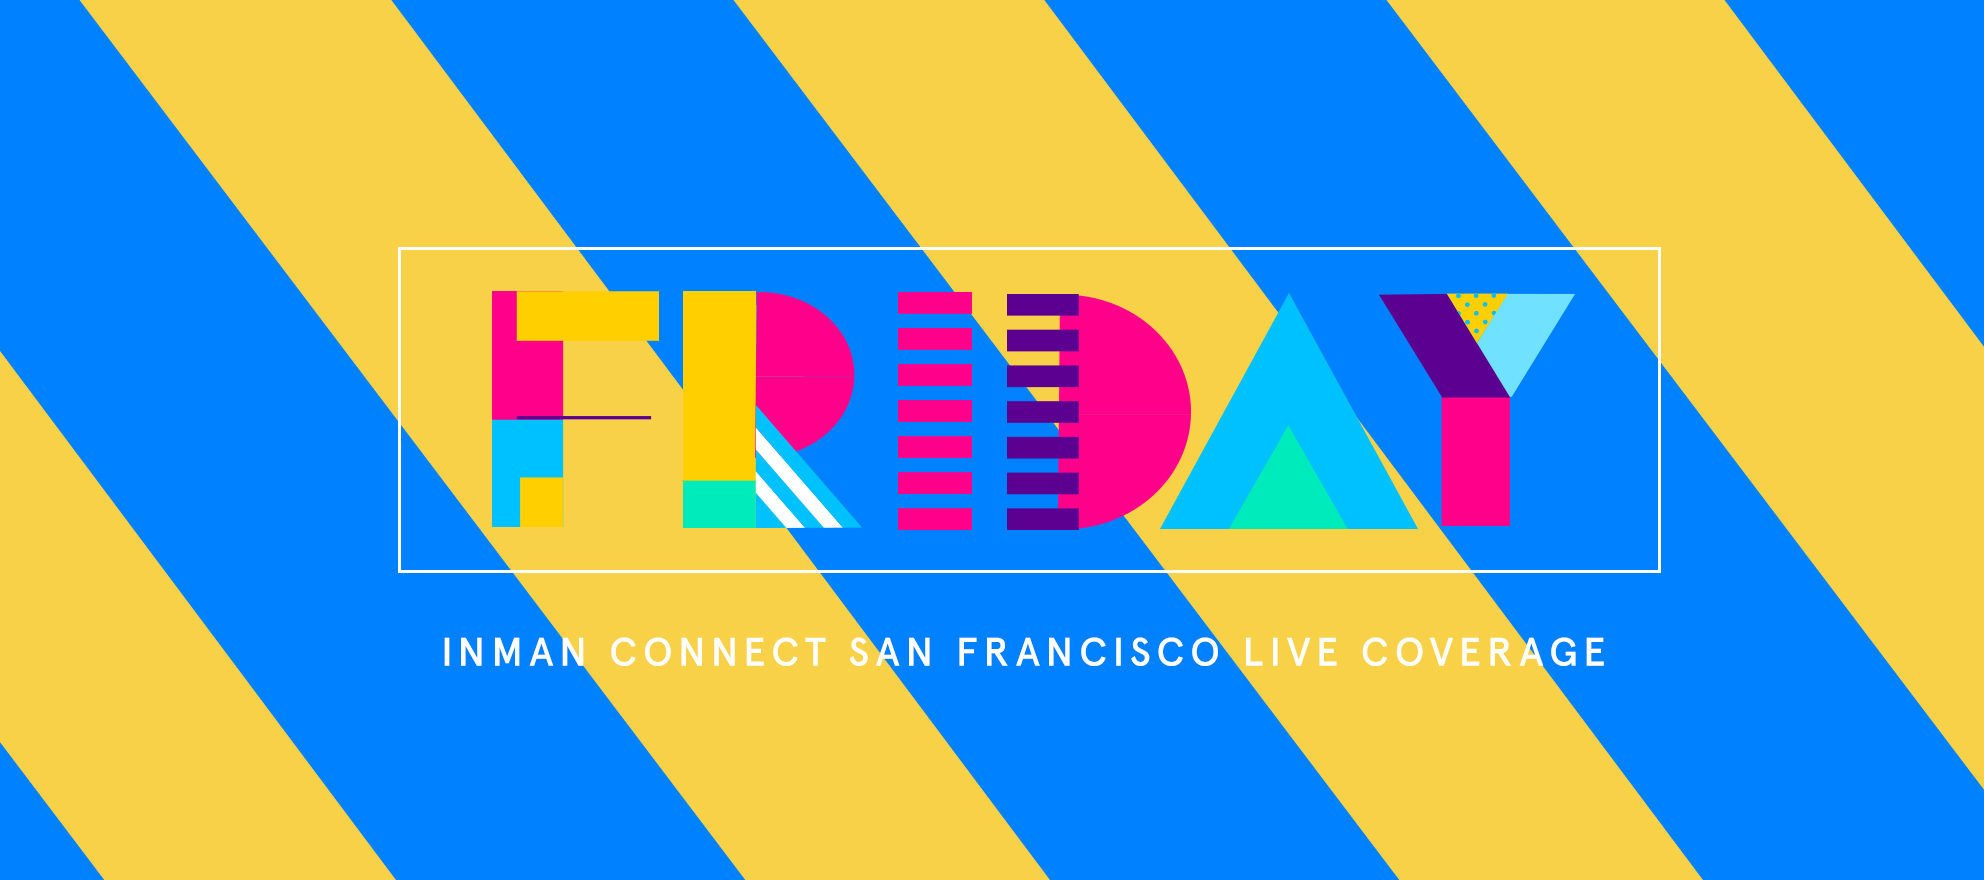 Inman Connect San Francisco Live Coverage: Friday